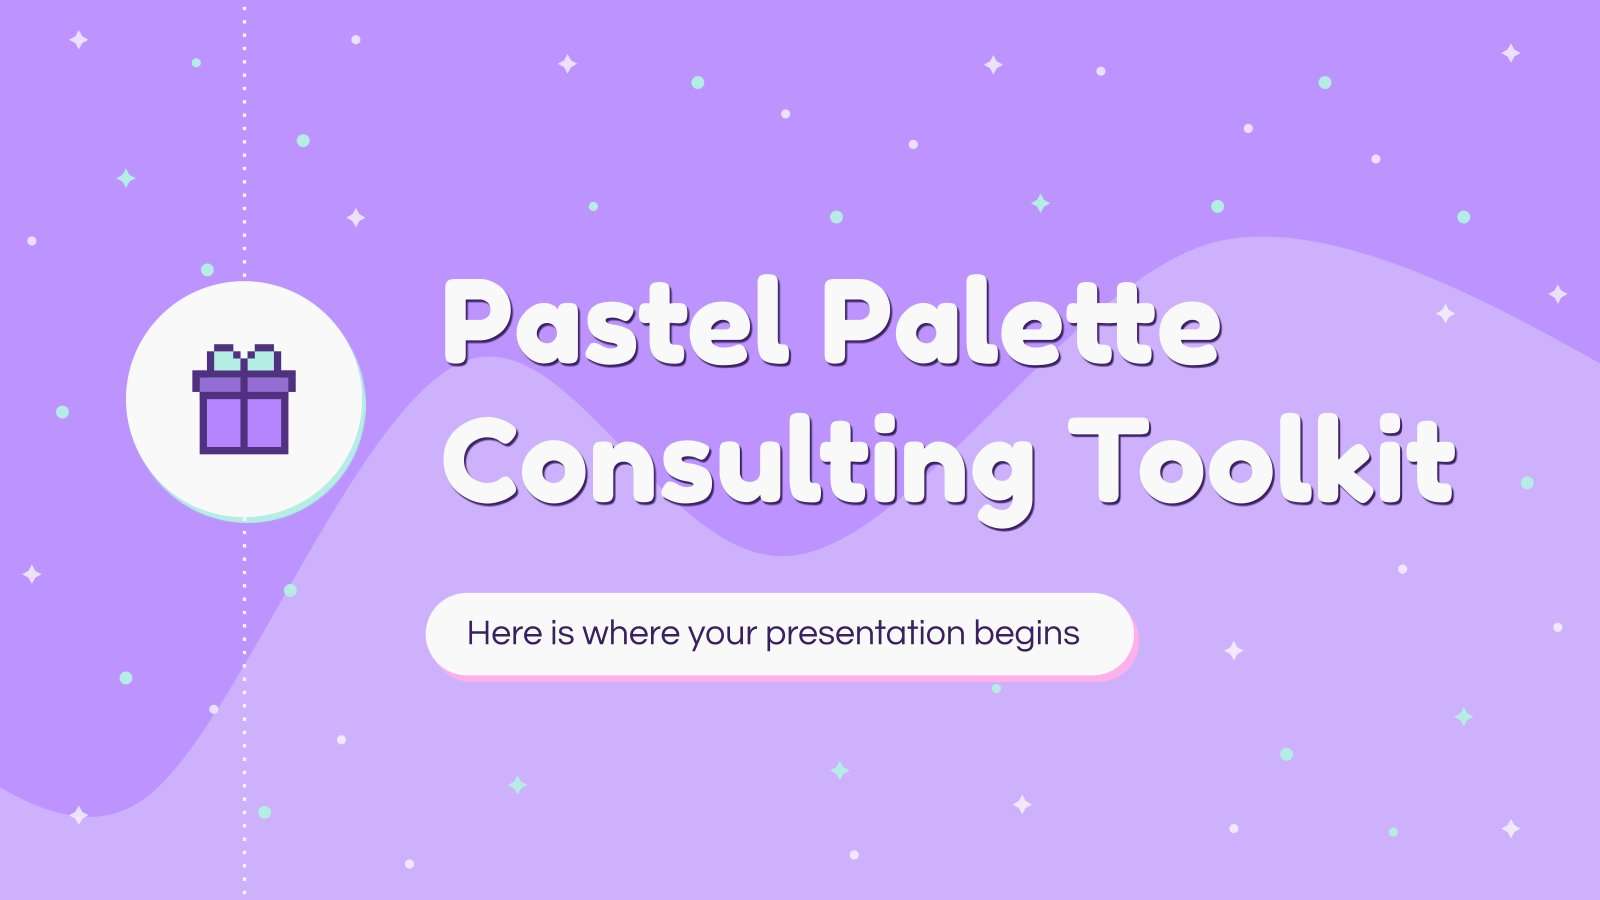 Pastel Palette Consulting Toolkit presentation template